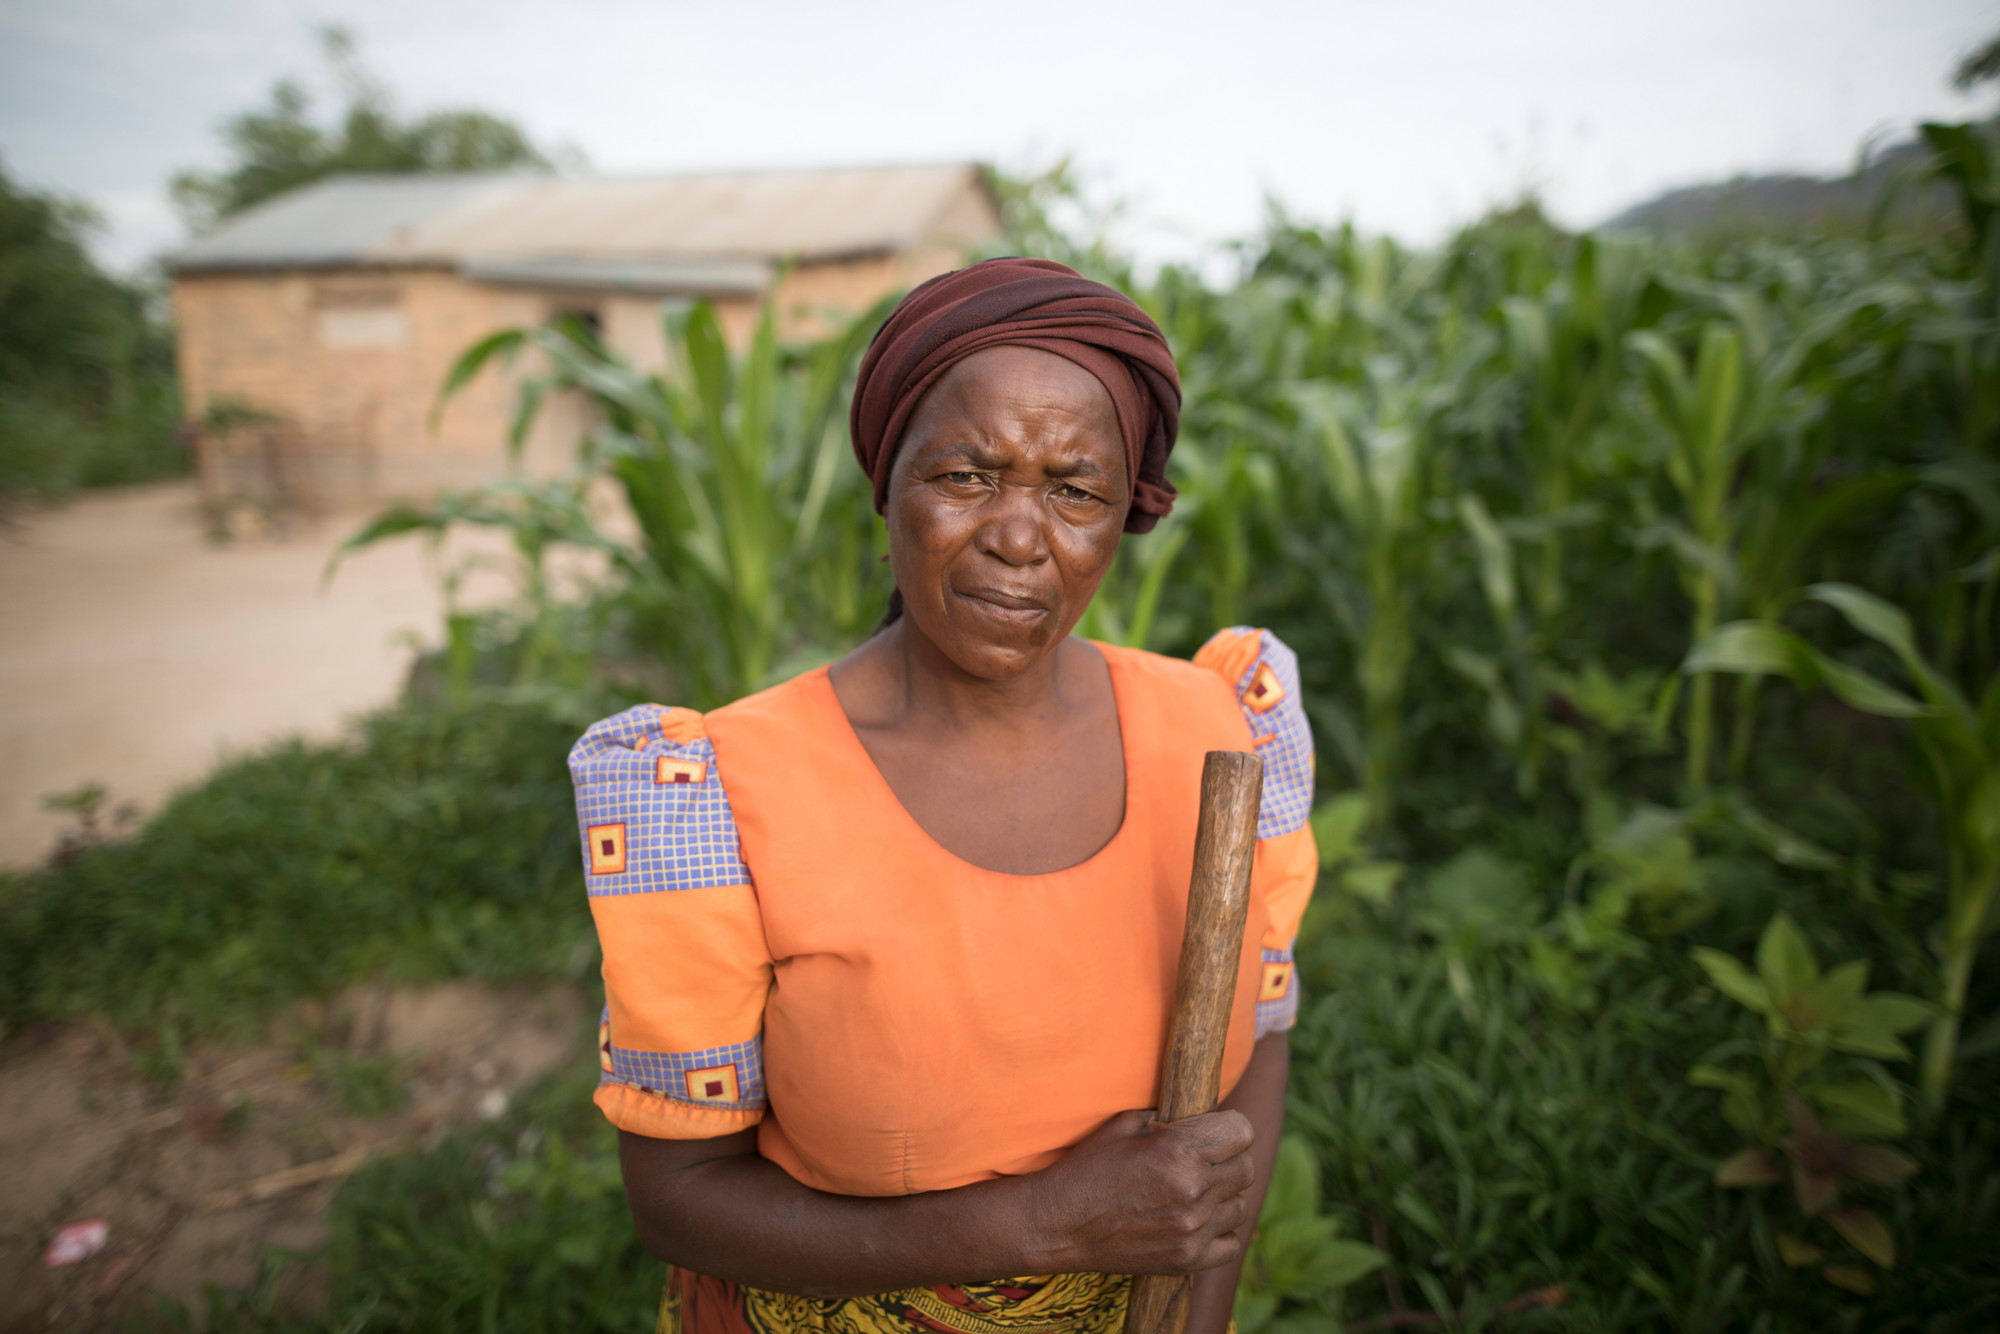 A woman in Tanzania stands in a field of maize.